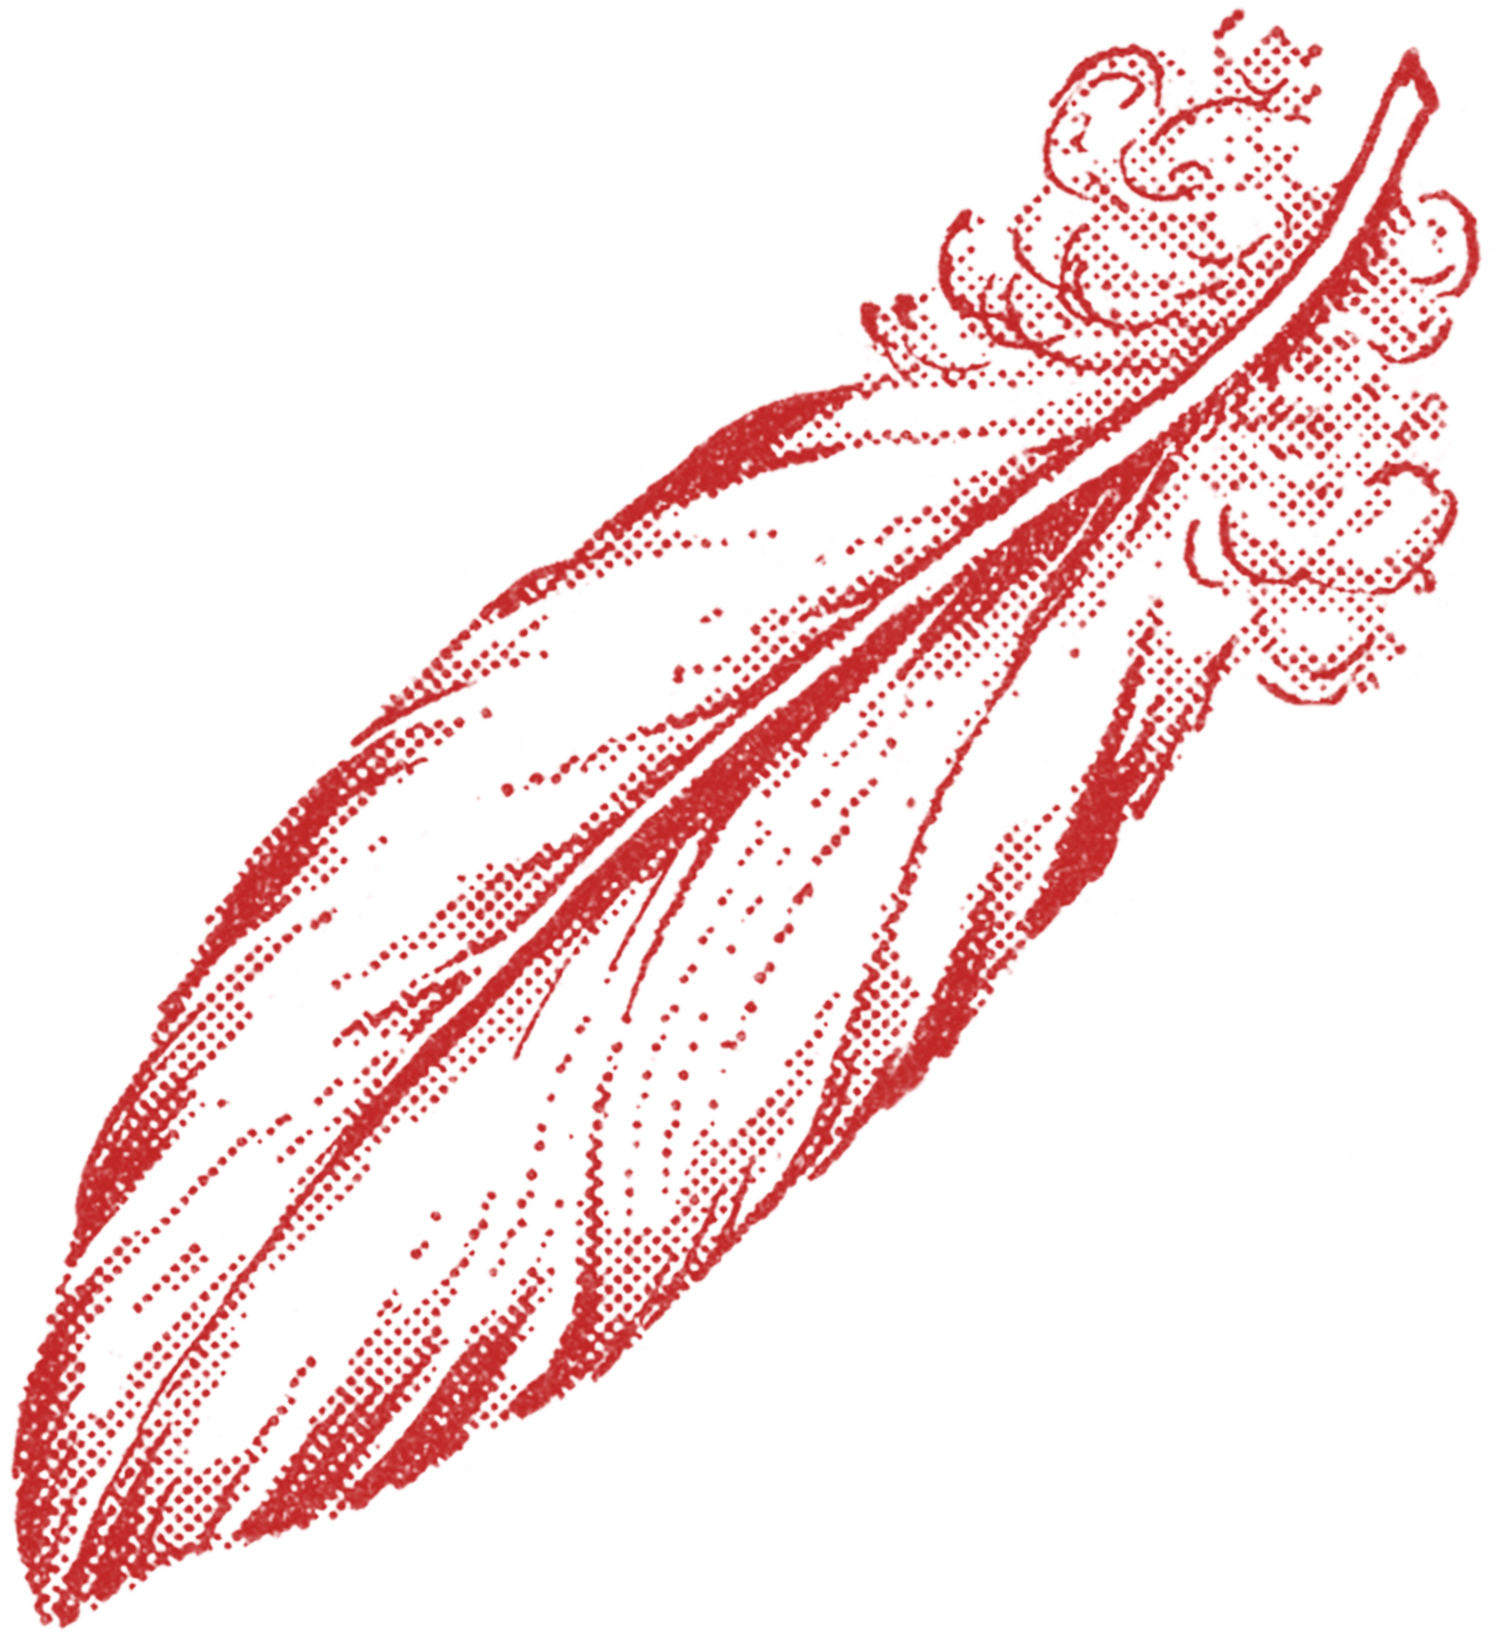 Feathers clipart victorian. Feather illustrations the graphics